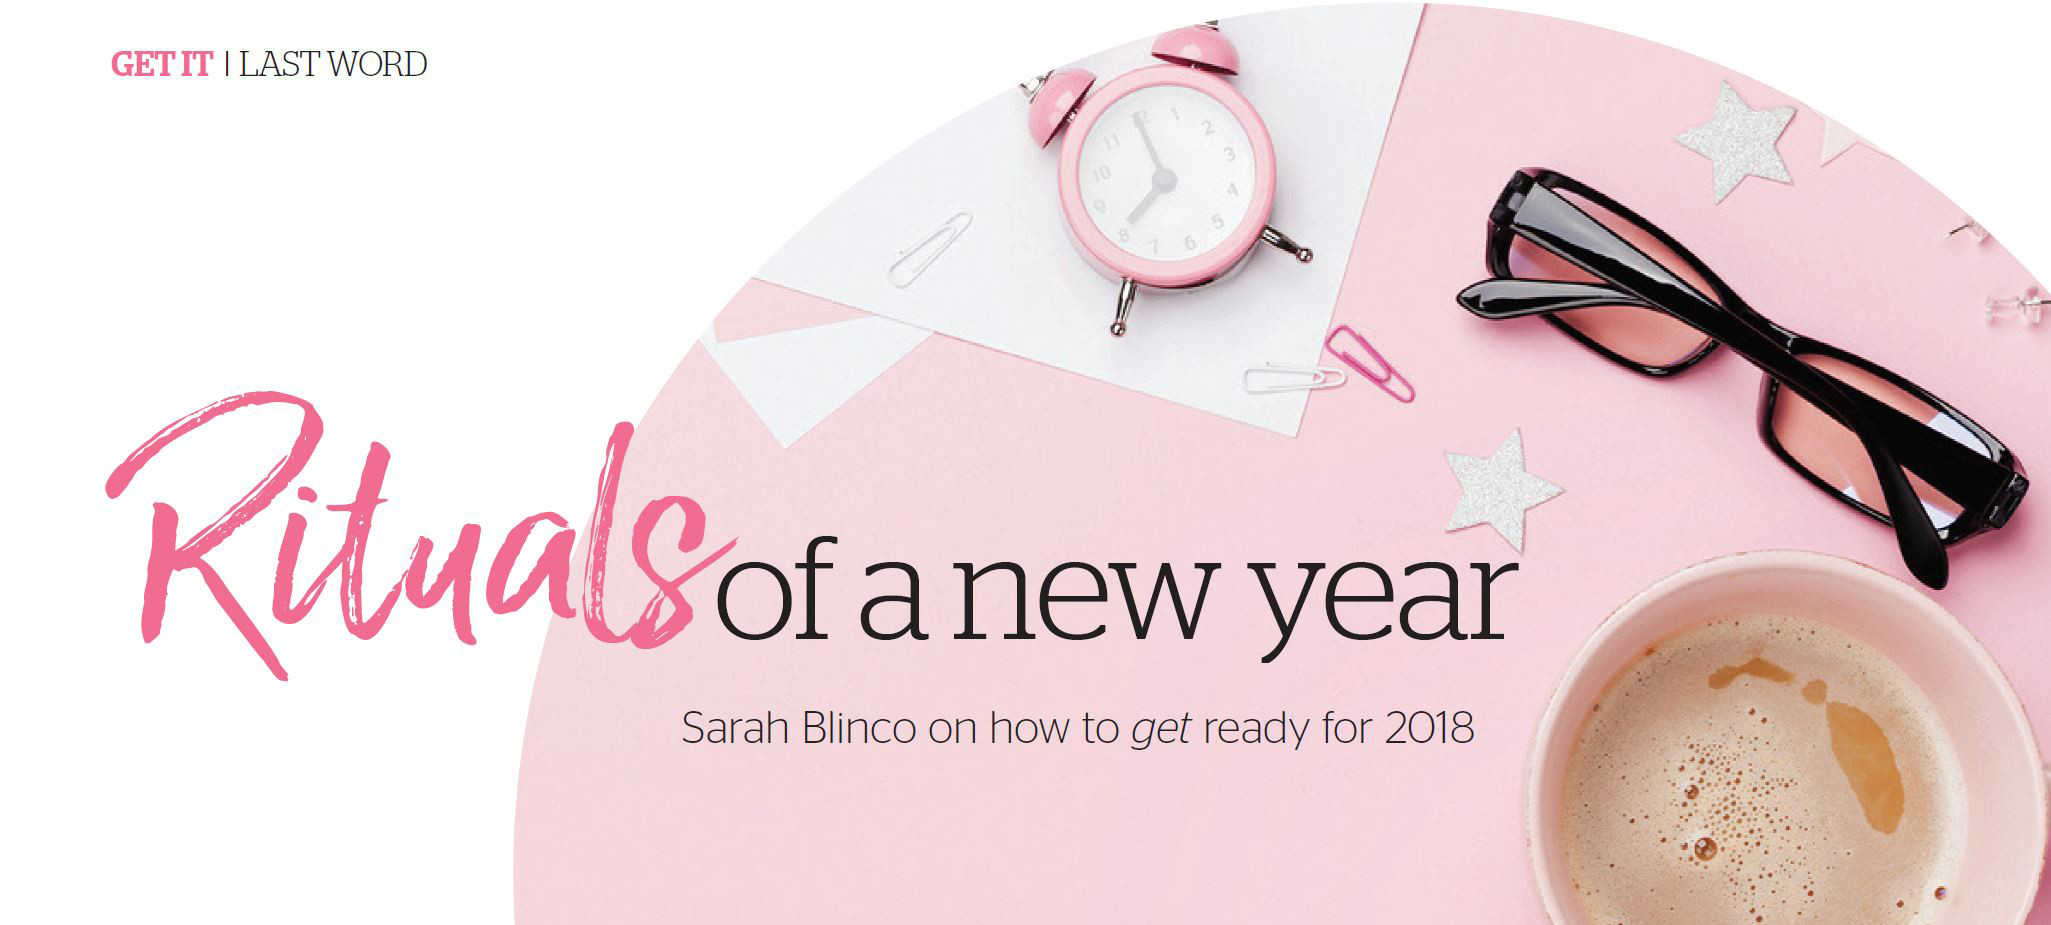 new year rituals – getting your year started the right way